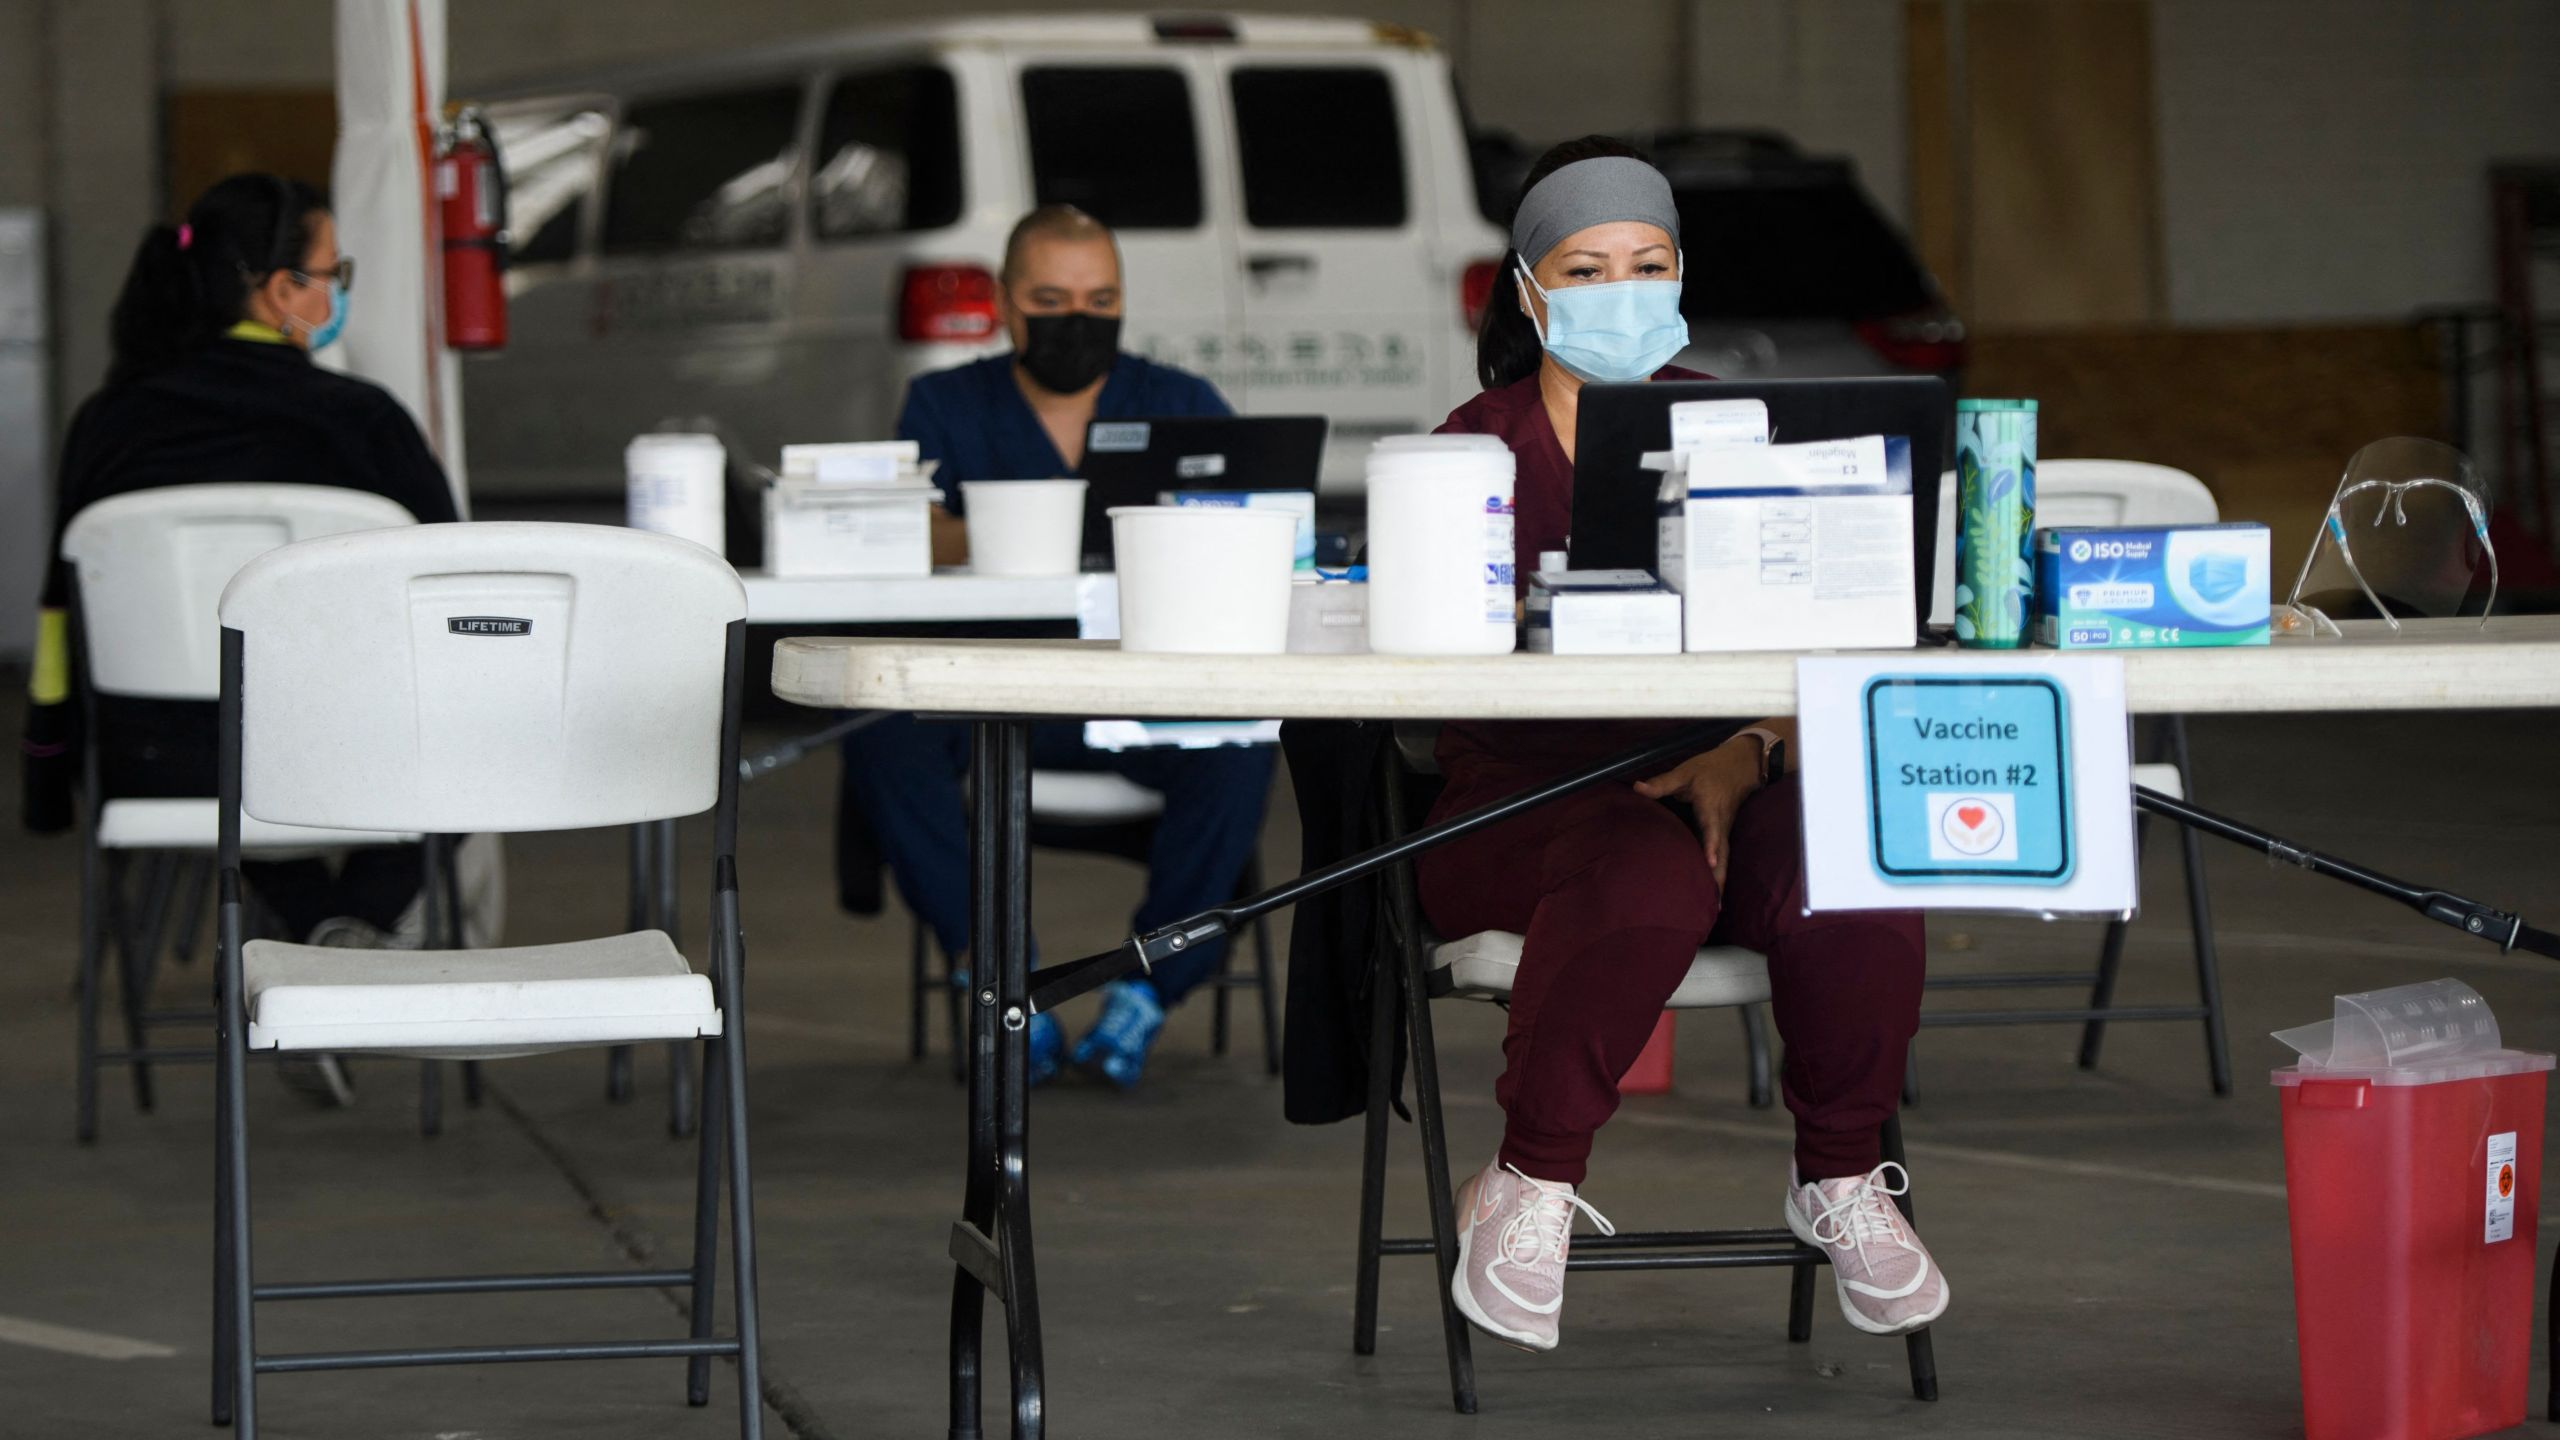 A nurse waits at an empty table for more patients to arrive to receive a dose of the Moderna Covid-19 vaccine at a Veterans Administration (VA) Long Beach Healthcare System pop-up vaccination site at the Dae Hueng Presbyterian Church on April 17, 2021 in Gardena, California. (PATRICK T. FALLON/AFP via Getty Images)